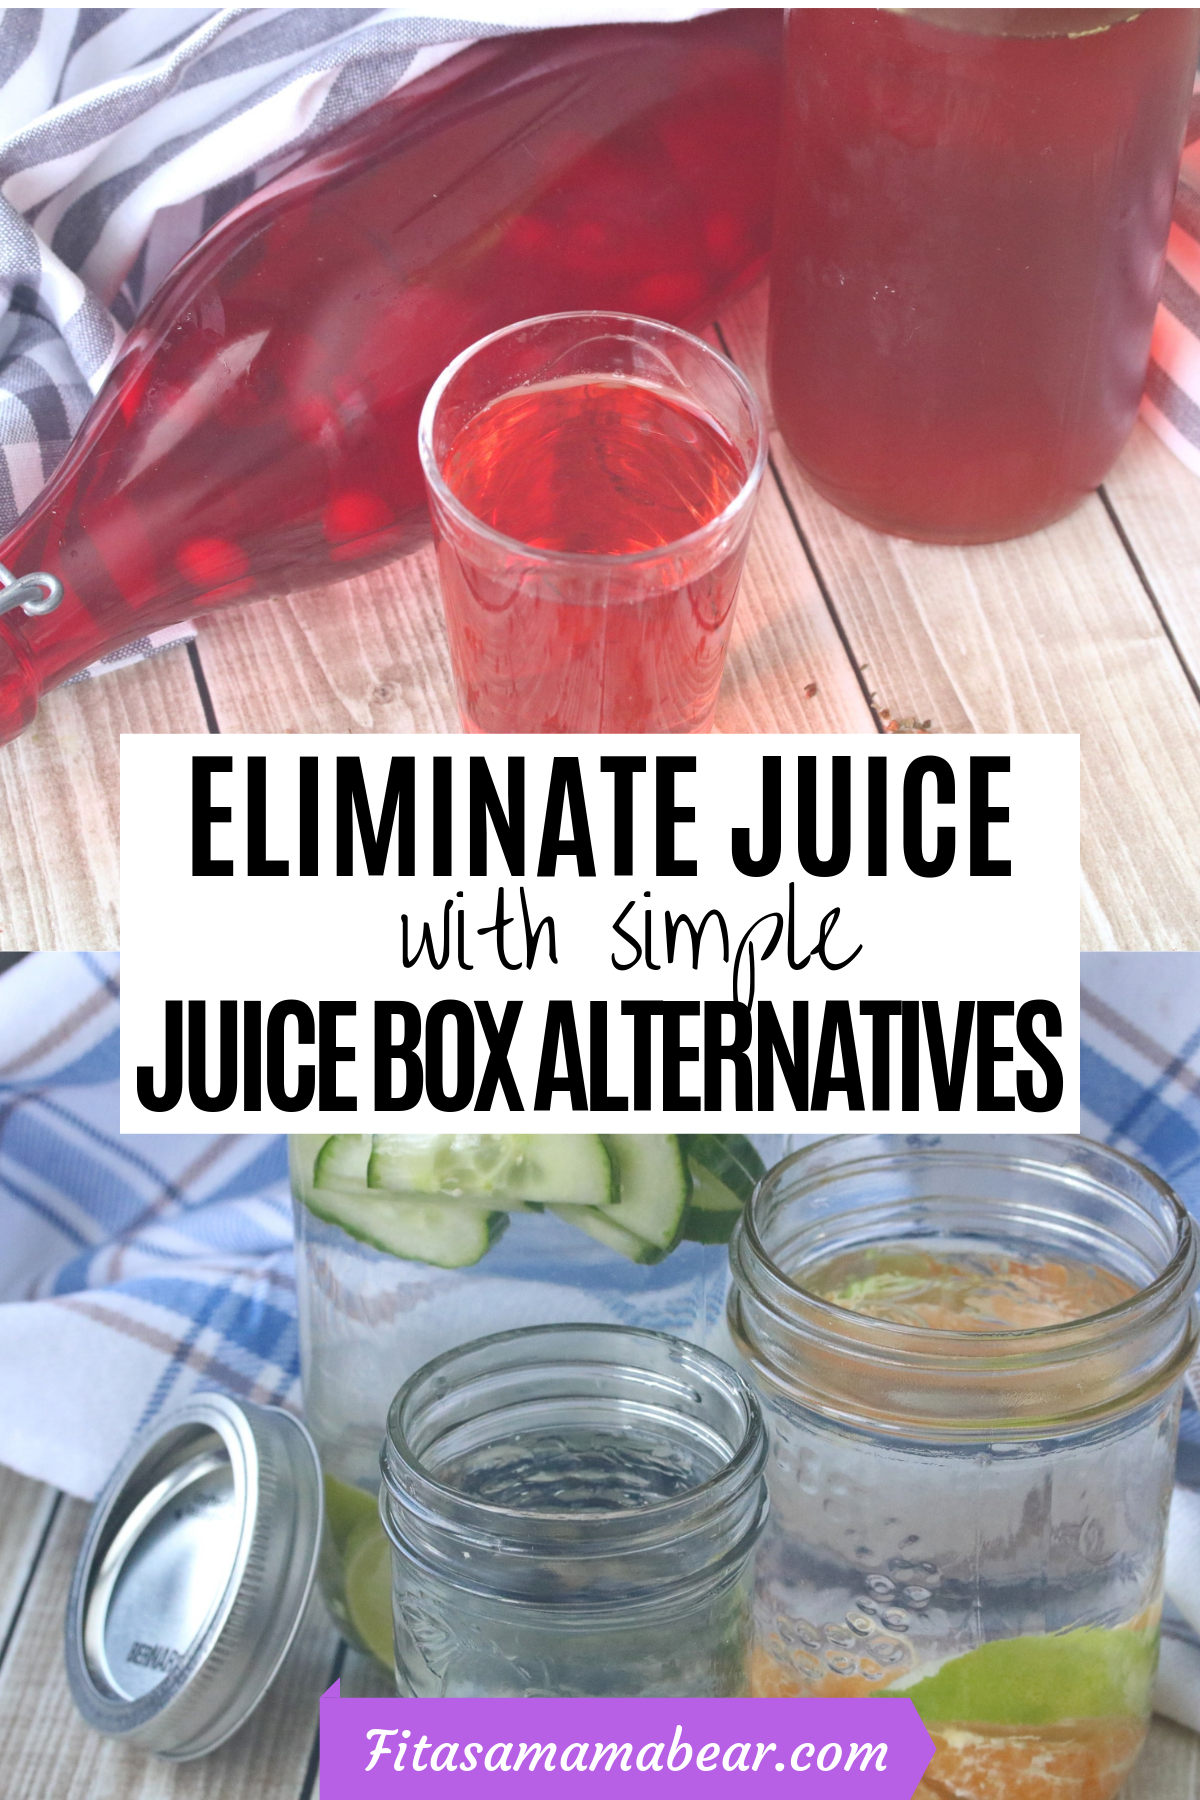 Juice box alternatives